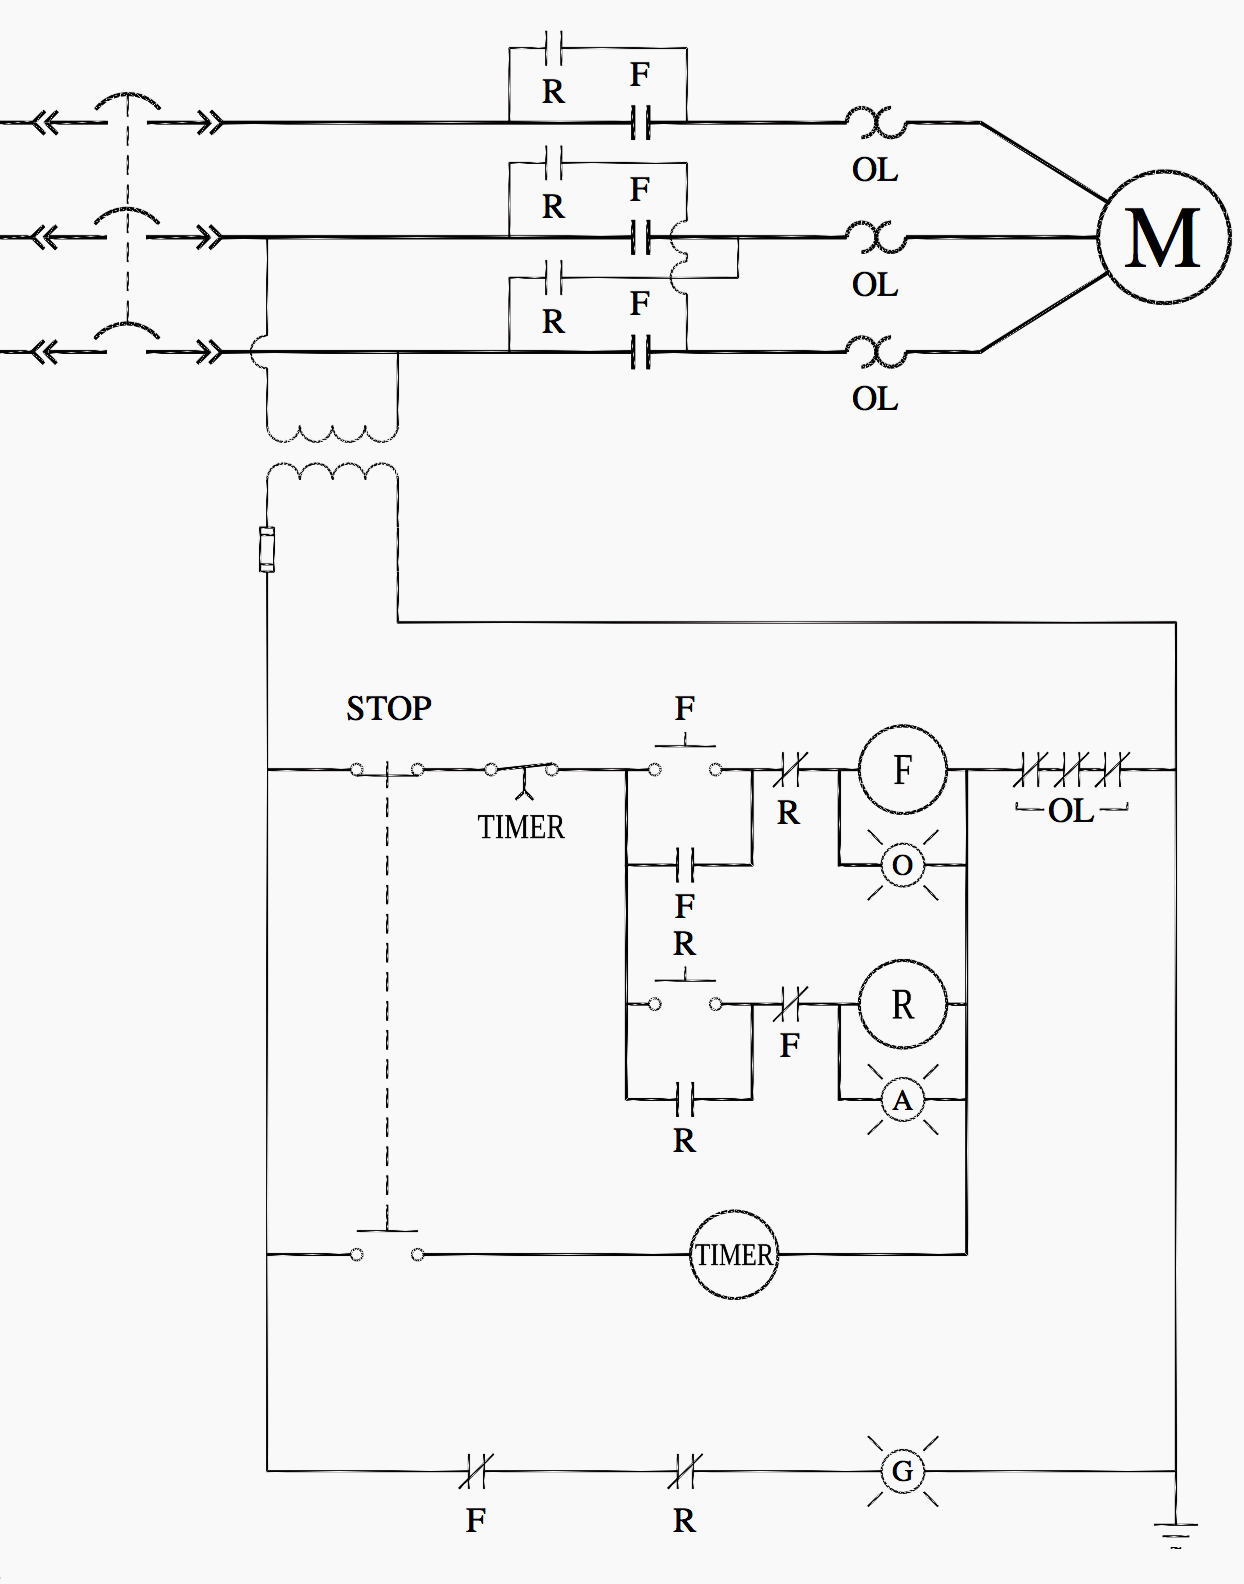 medium resolution of anti plugging circuit automation in 2019 ladder logic on hand drill circuit diagram on simple motor control ladder diagram